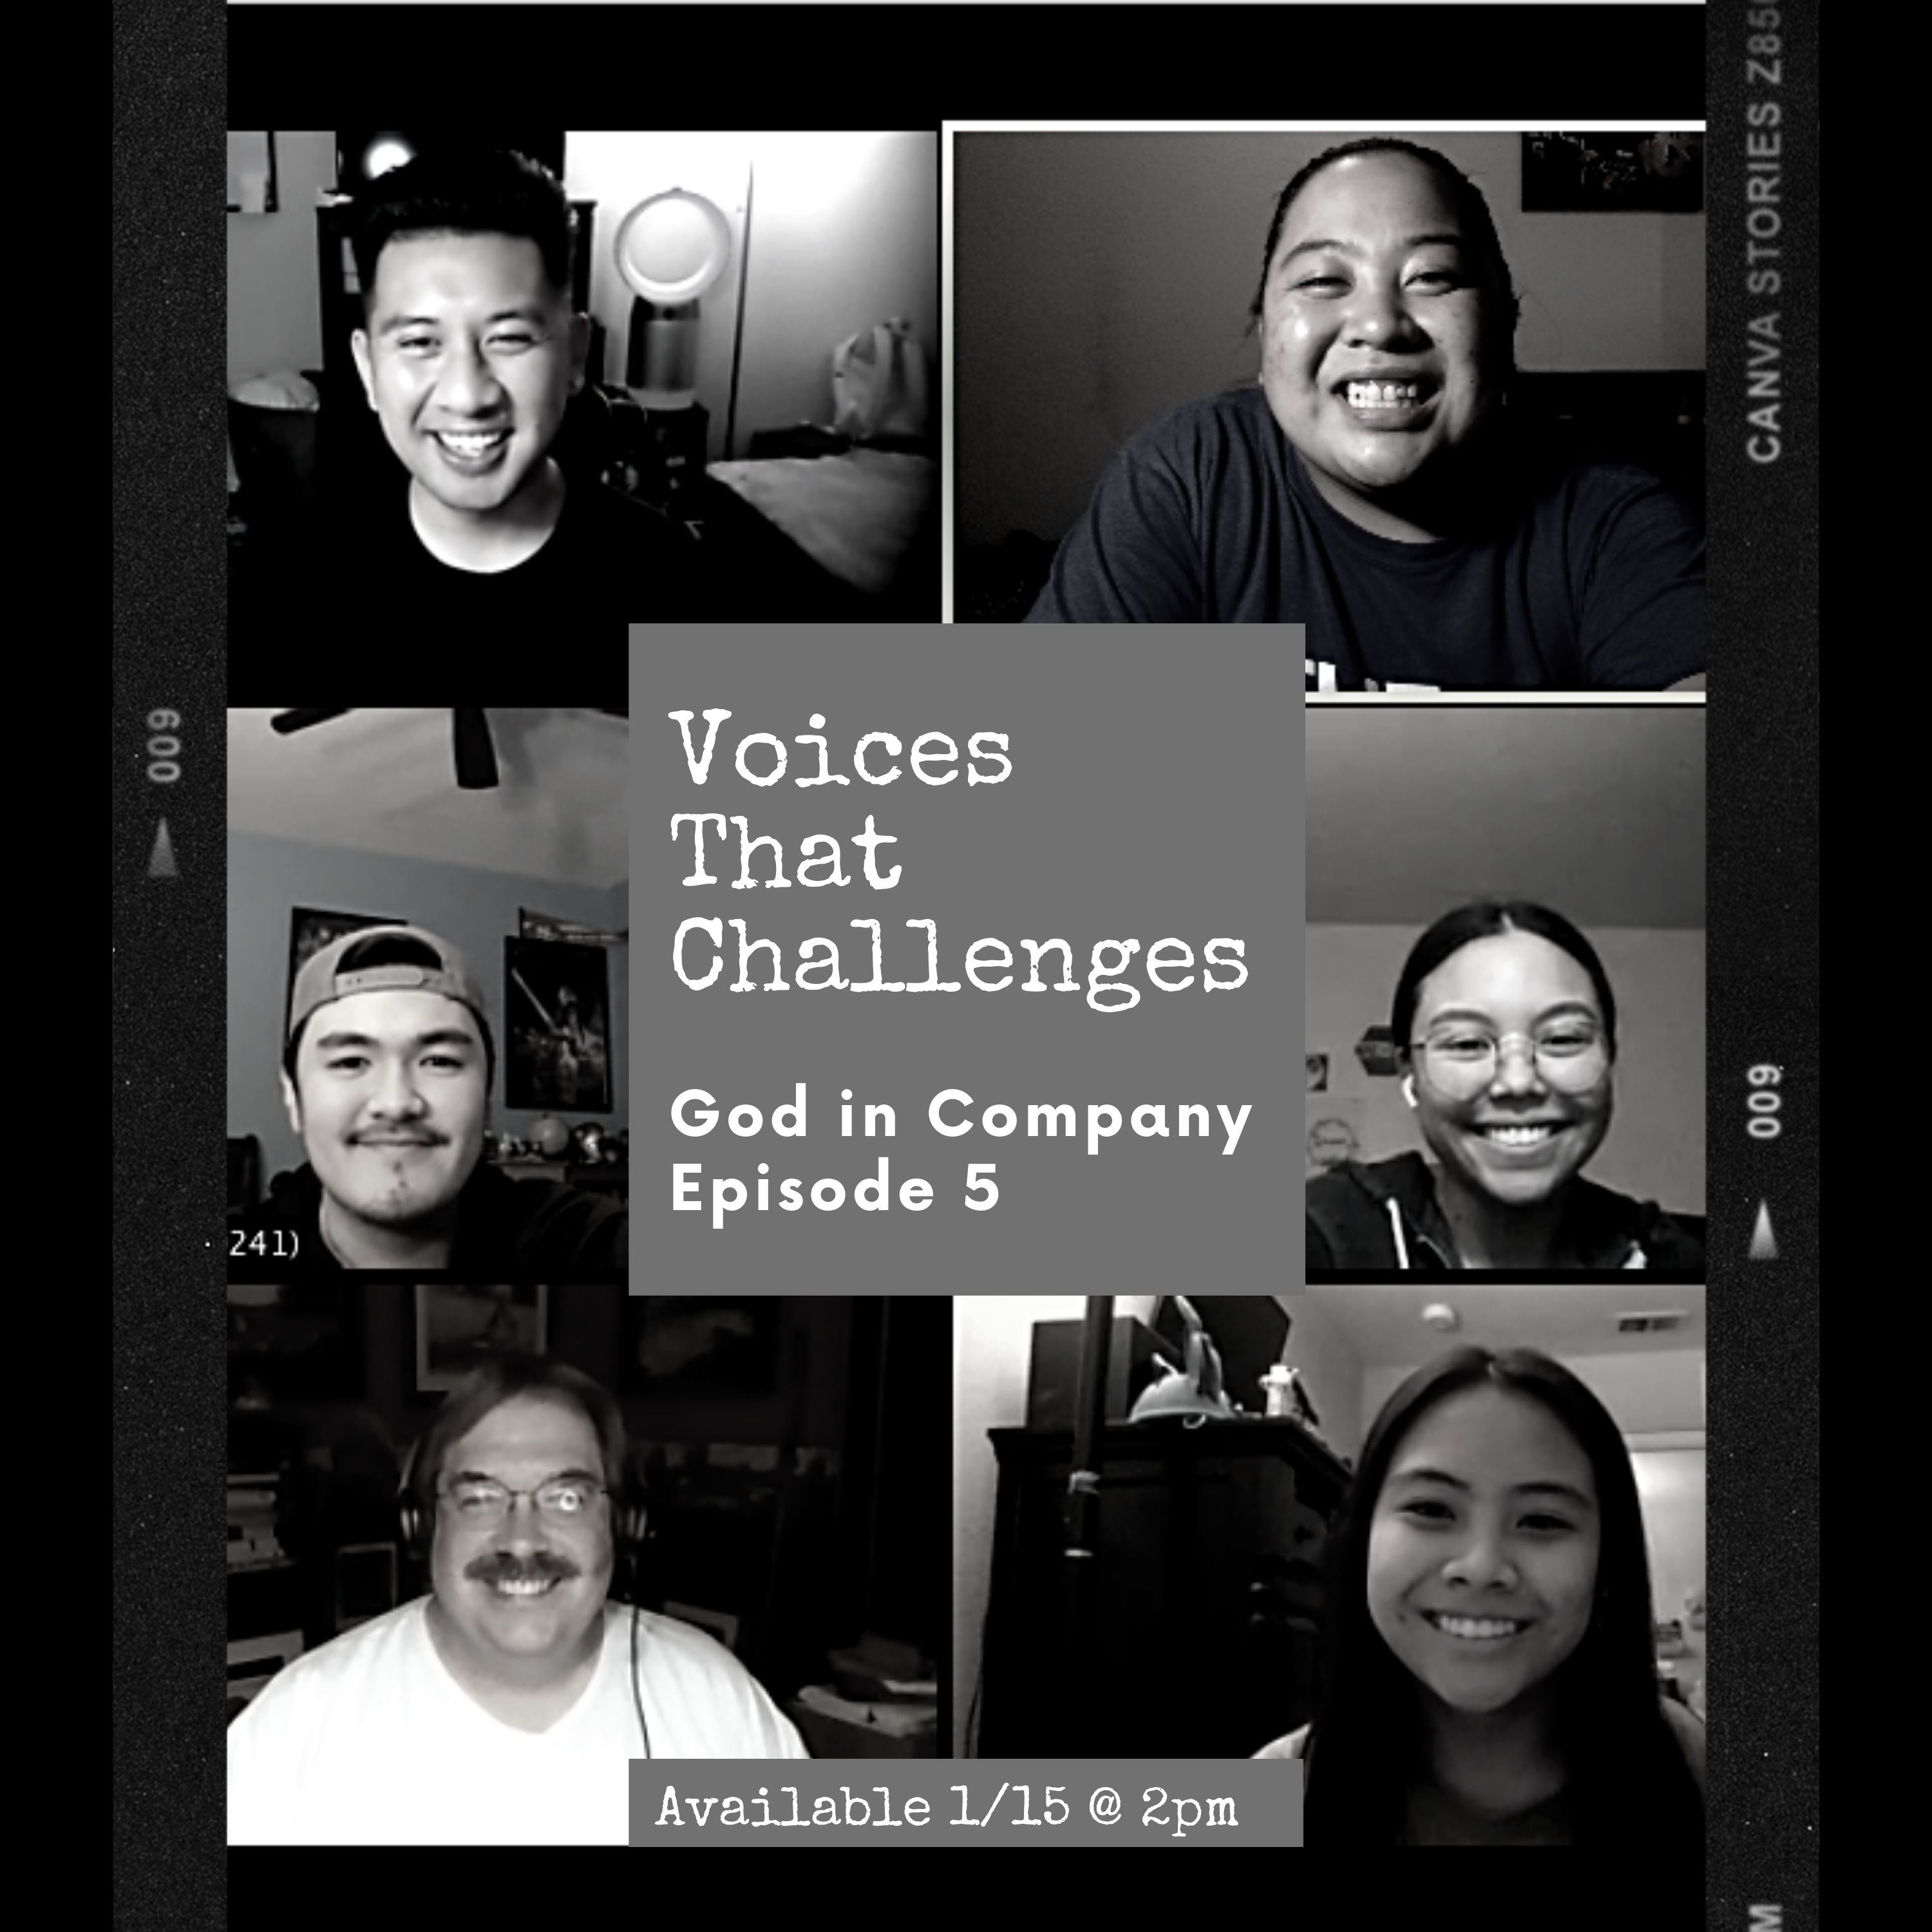 Voices That Challenges